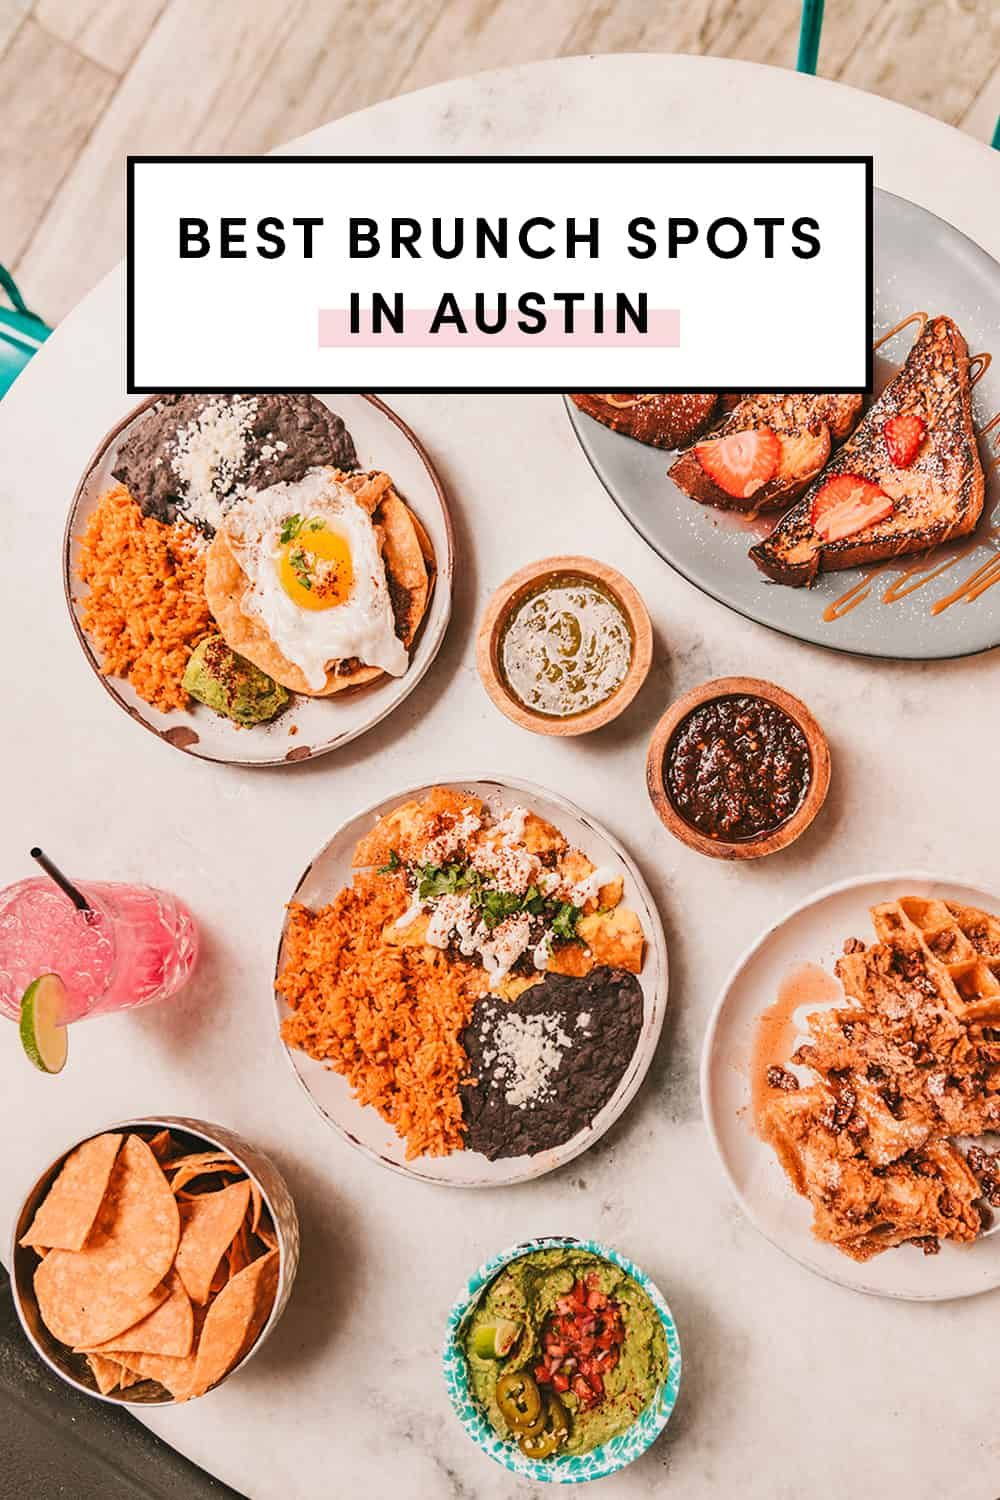 24 Spots With The Best Brunch In Austin Updated 2020 In 2020 Austin Brunch Brunch Restaurants Breakfast Brunch Recipes